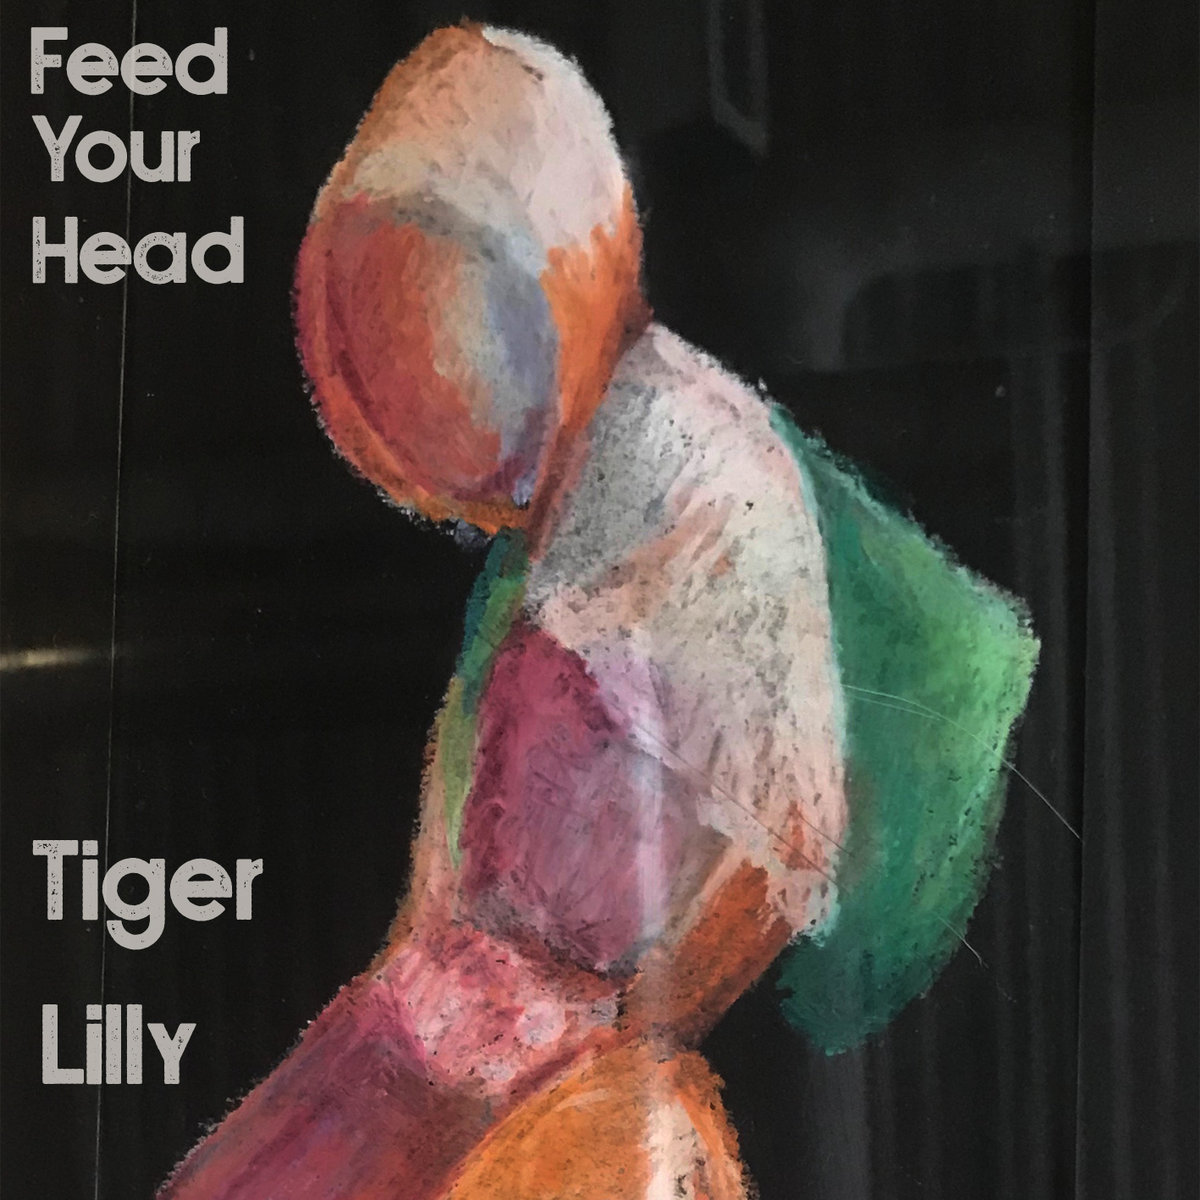 Tiger Lilly by Feed Your Head